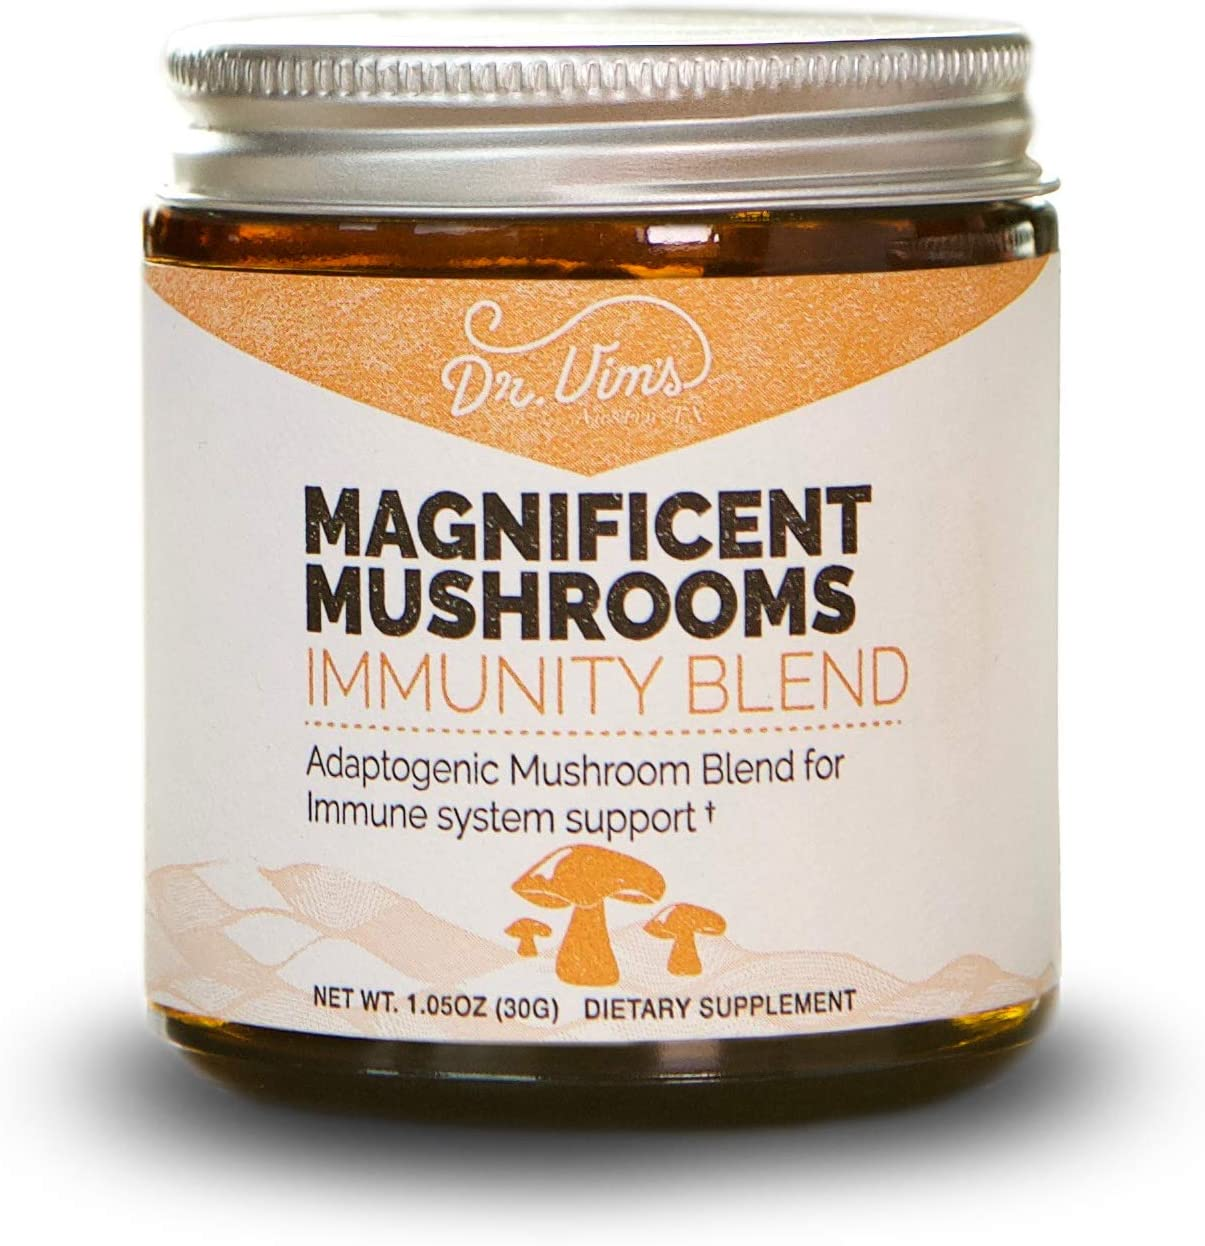 Magnificent Mushrooms Immunity Blend Immune, Stress Inflammation Support, Fight Fatigue Free Radicals in The Body, Organic, Adaptogen, Agaricus, Maitake, Reishi, Chaga, Turkey Tail, 30 Servings